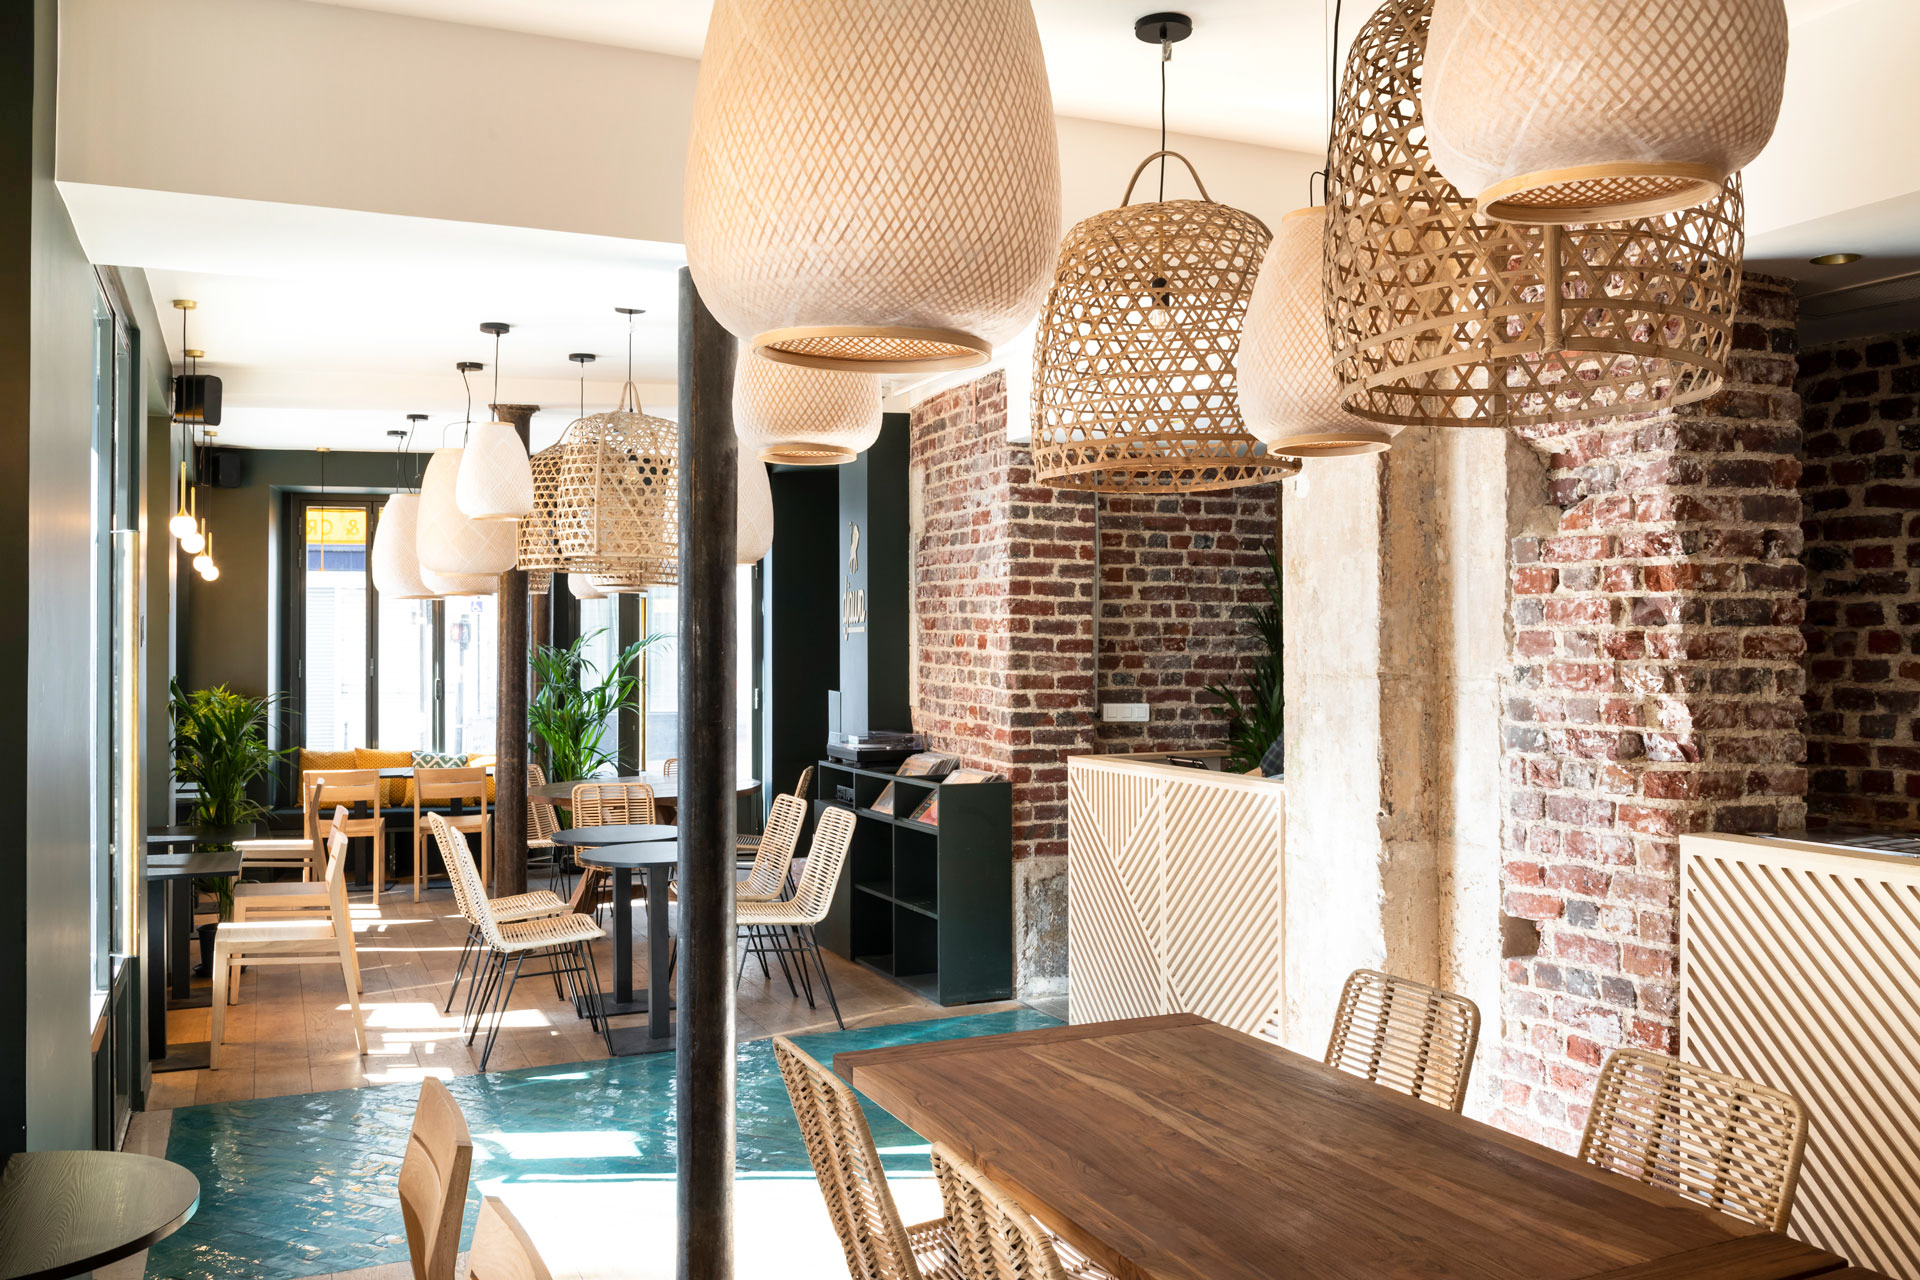 Djawa - restaurant - interior architecture - Paris - wood - brick - indonesian